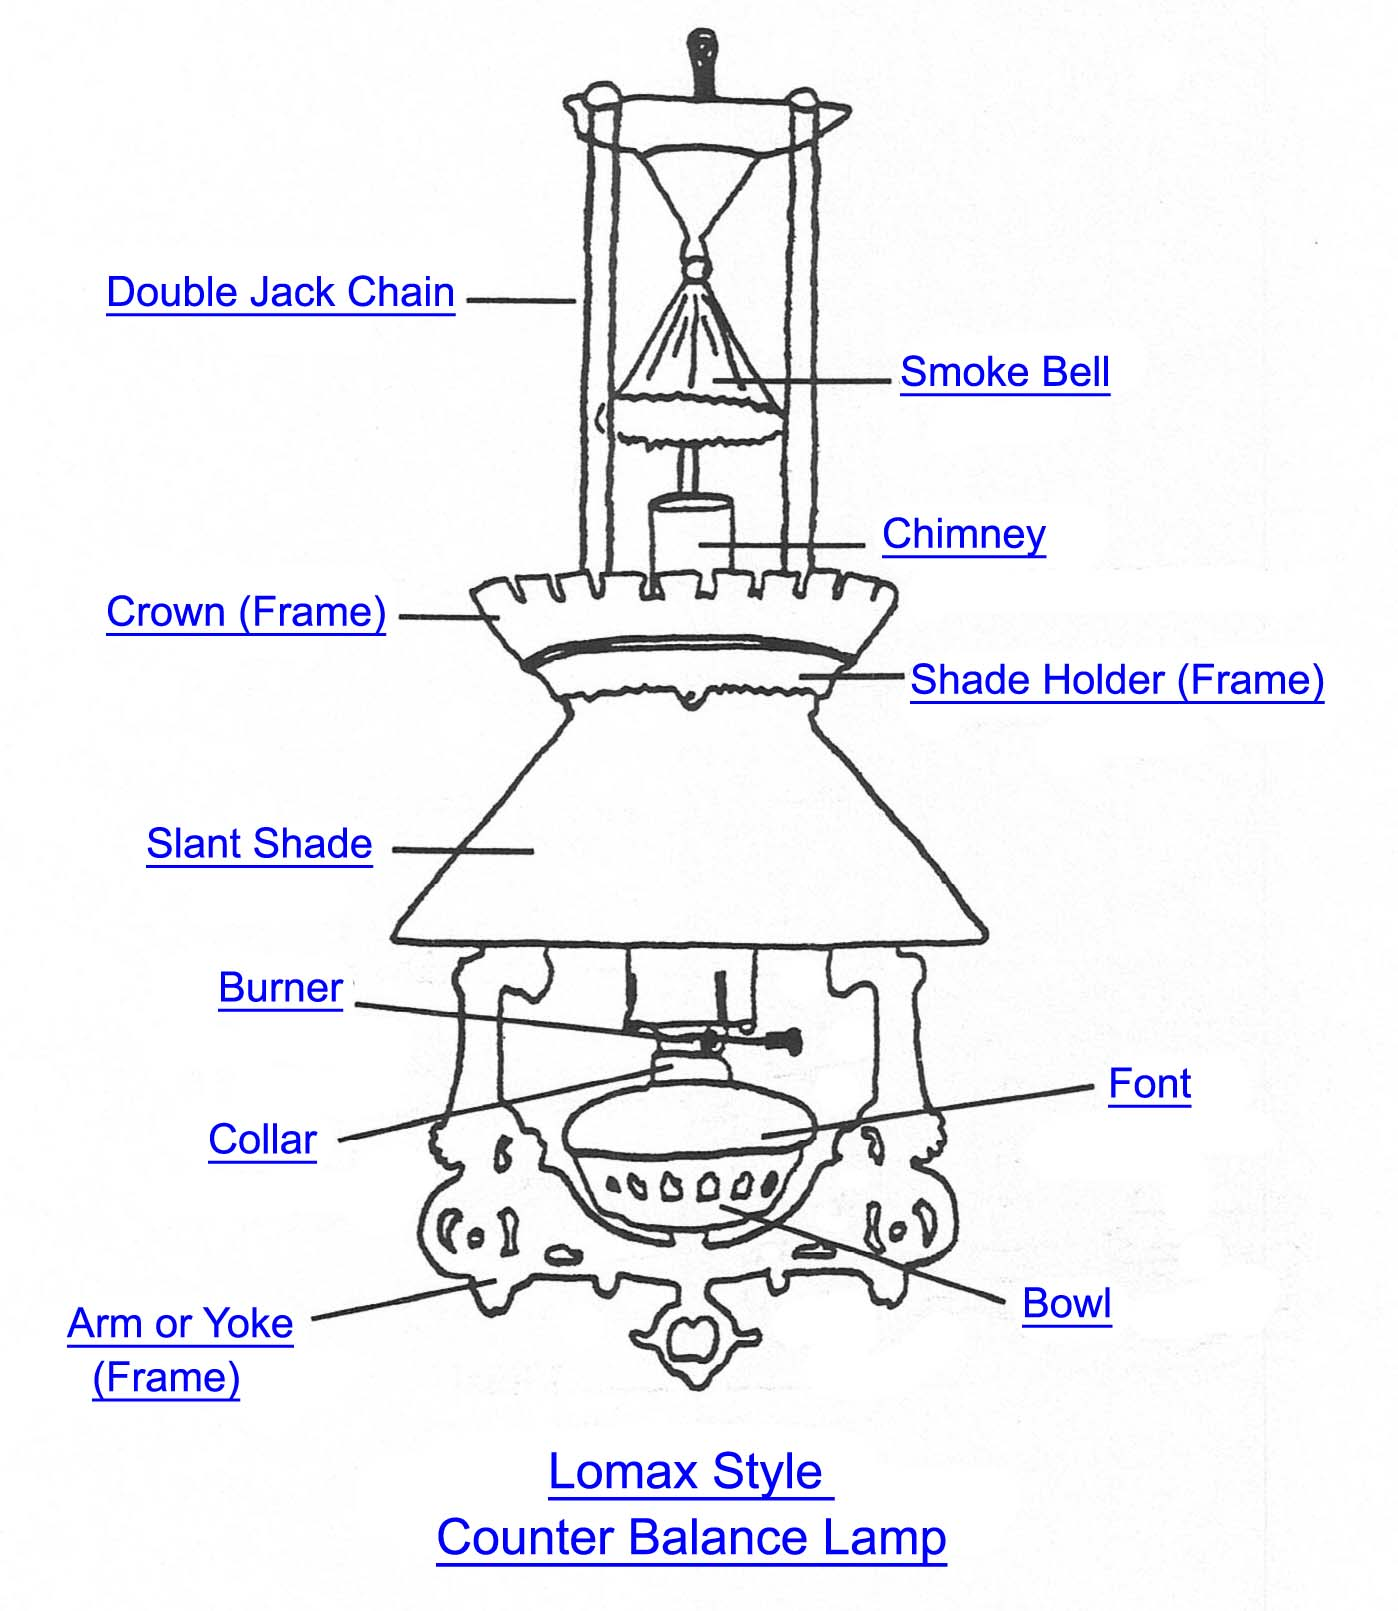 Lomax Counter Balance Lamp Part Index